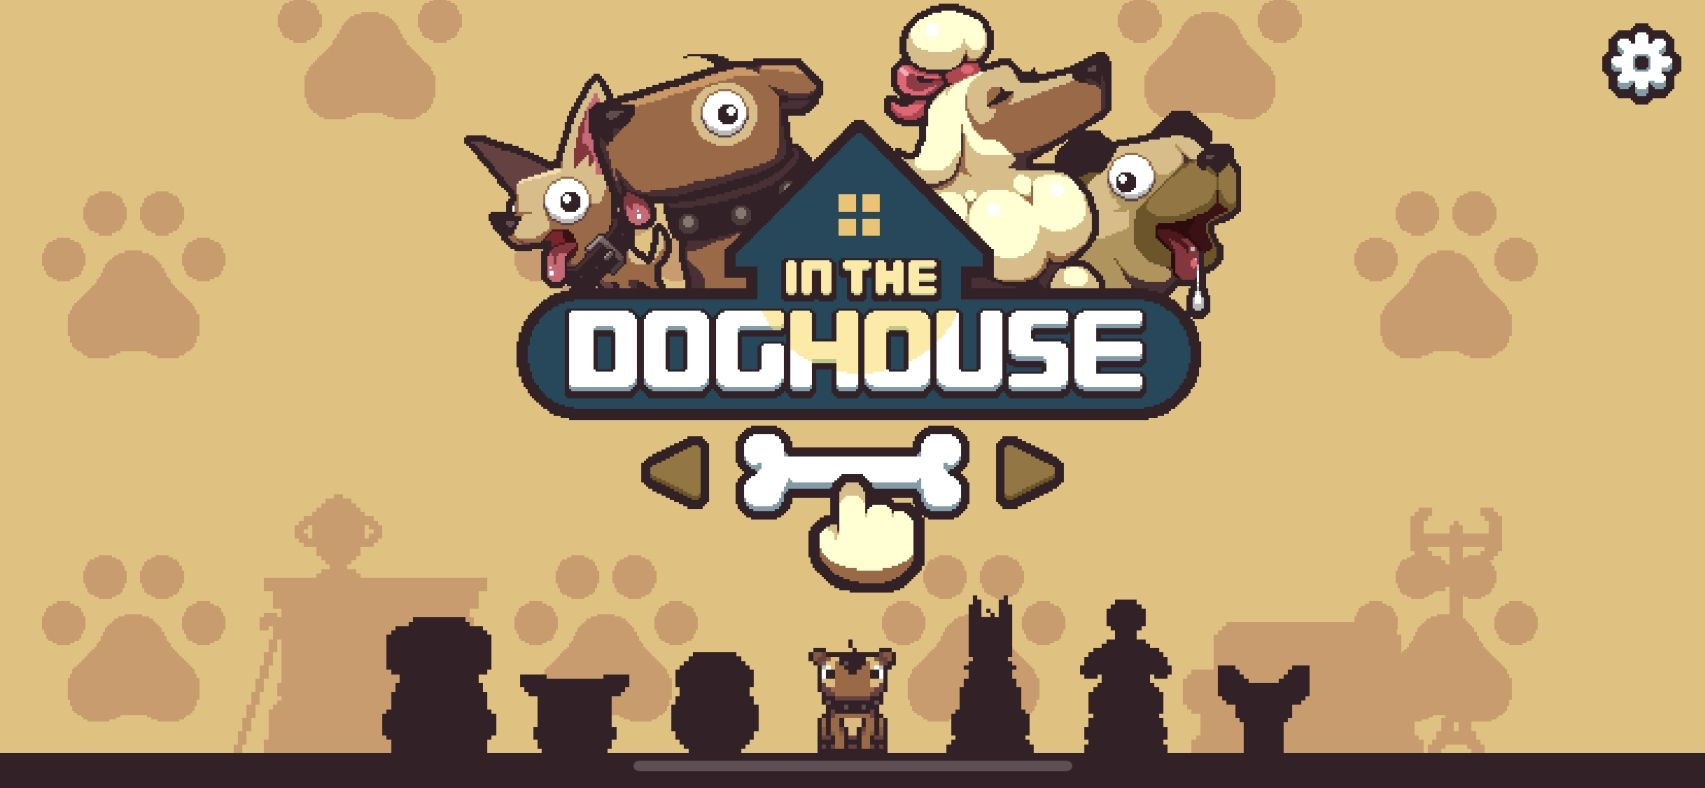 In The Dog House (copie d'écran 1 sur iPhone / iPad)